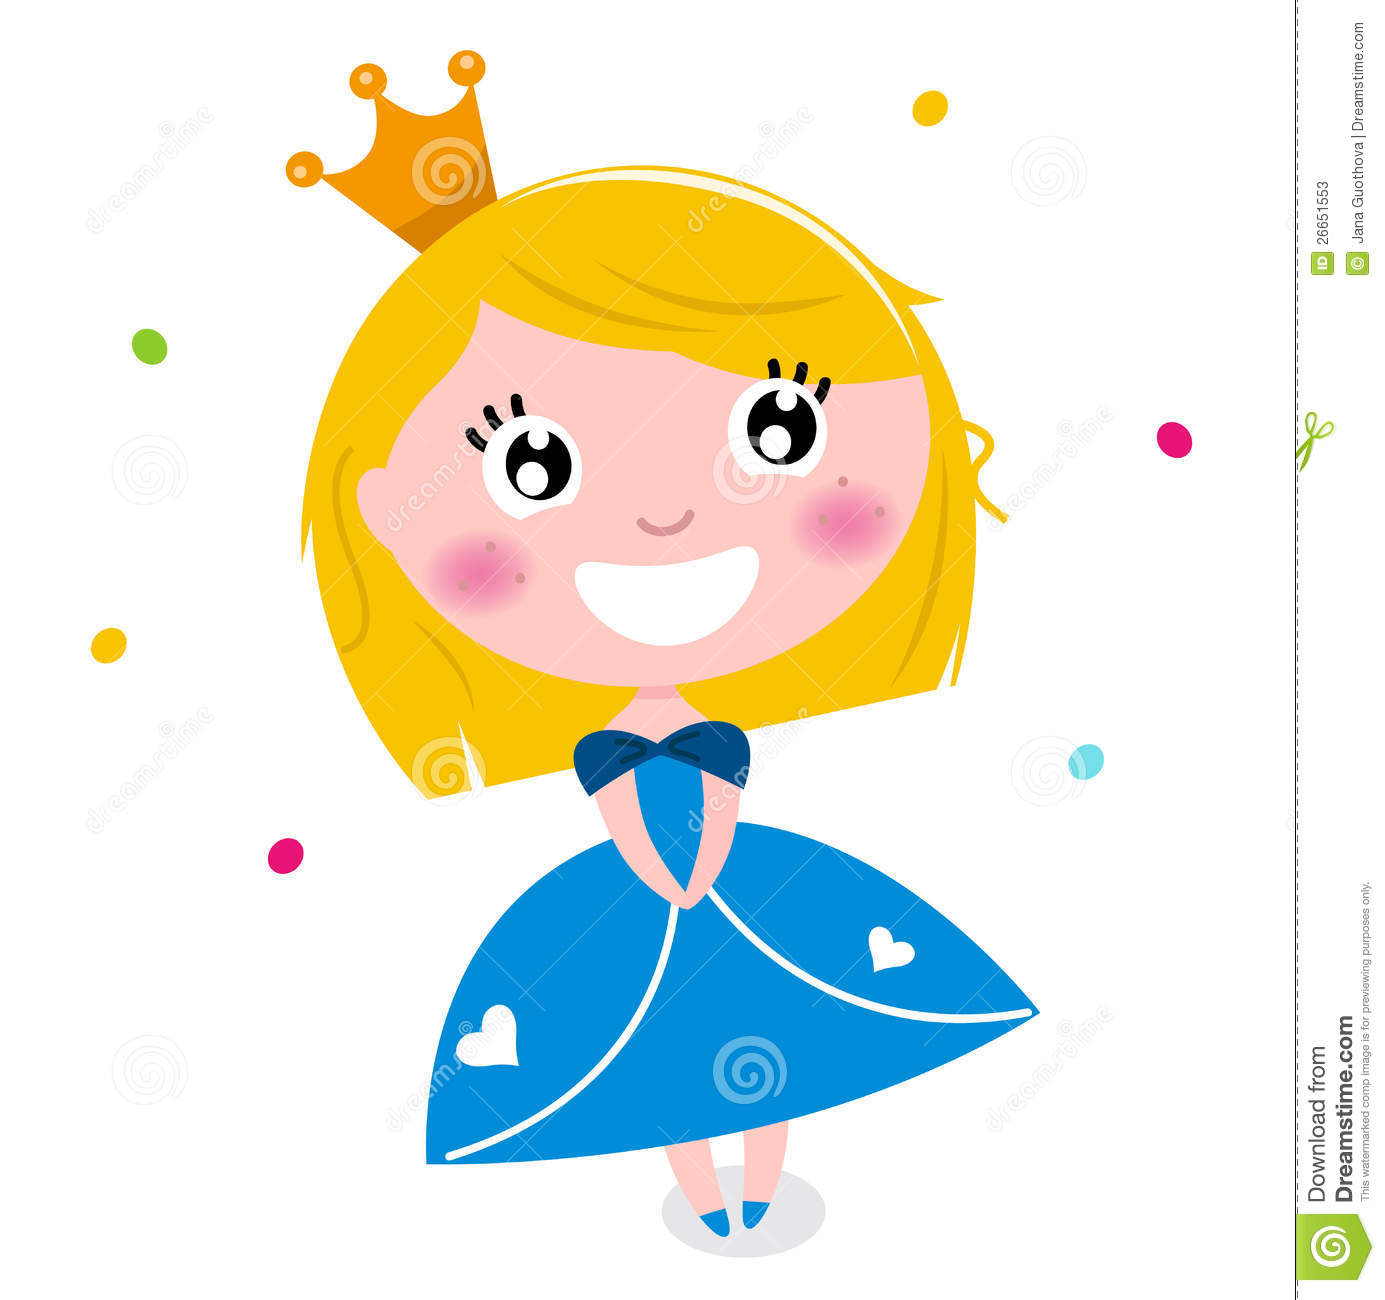 More similar stock images of ` Cute little cartoon princess `